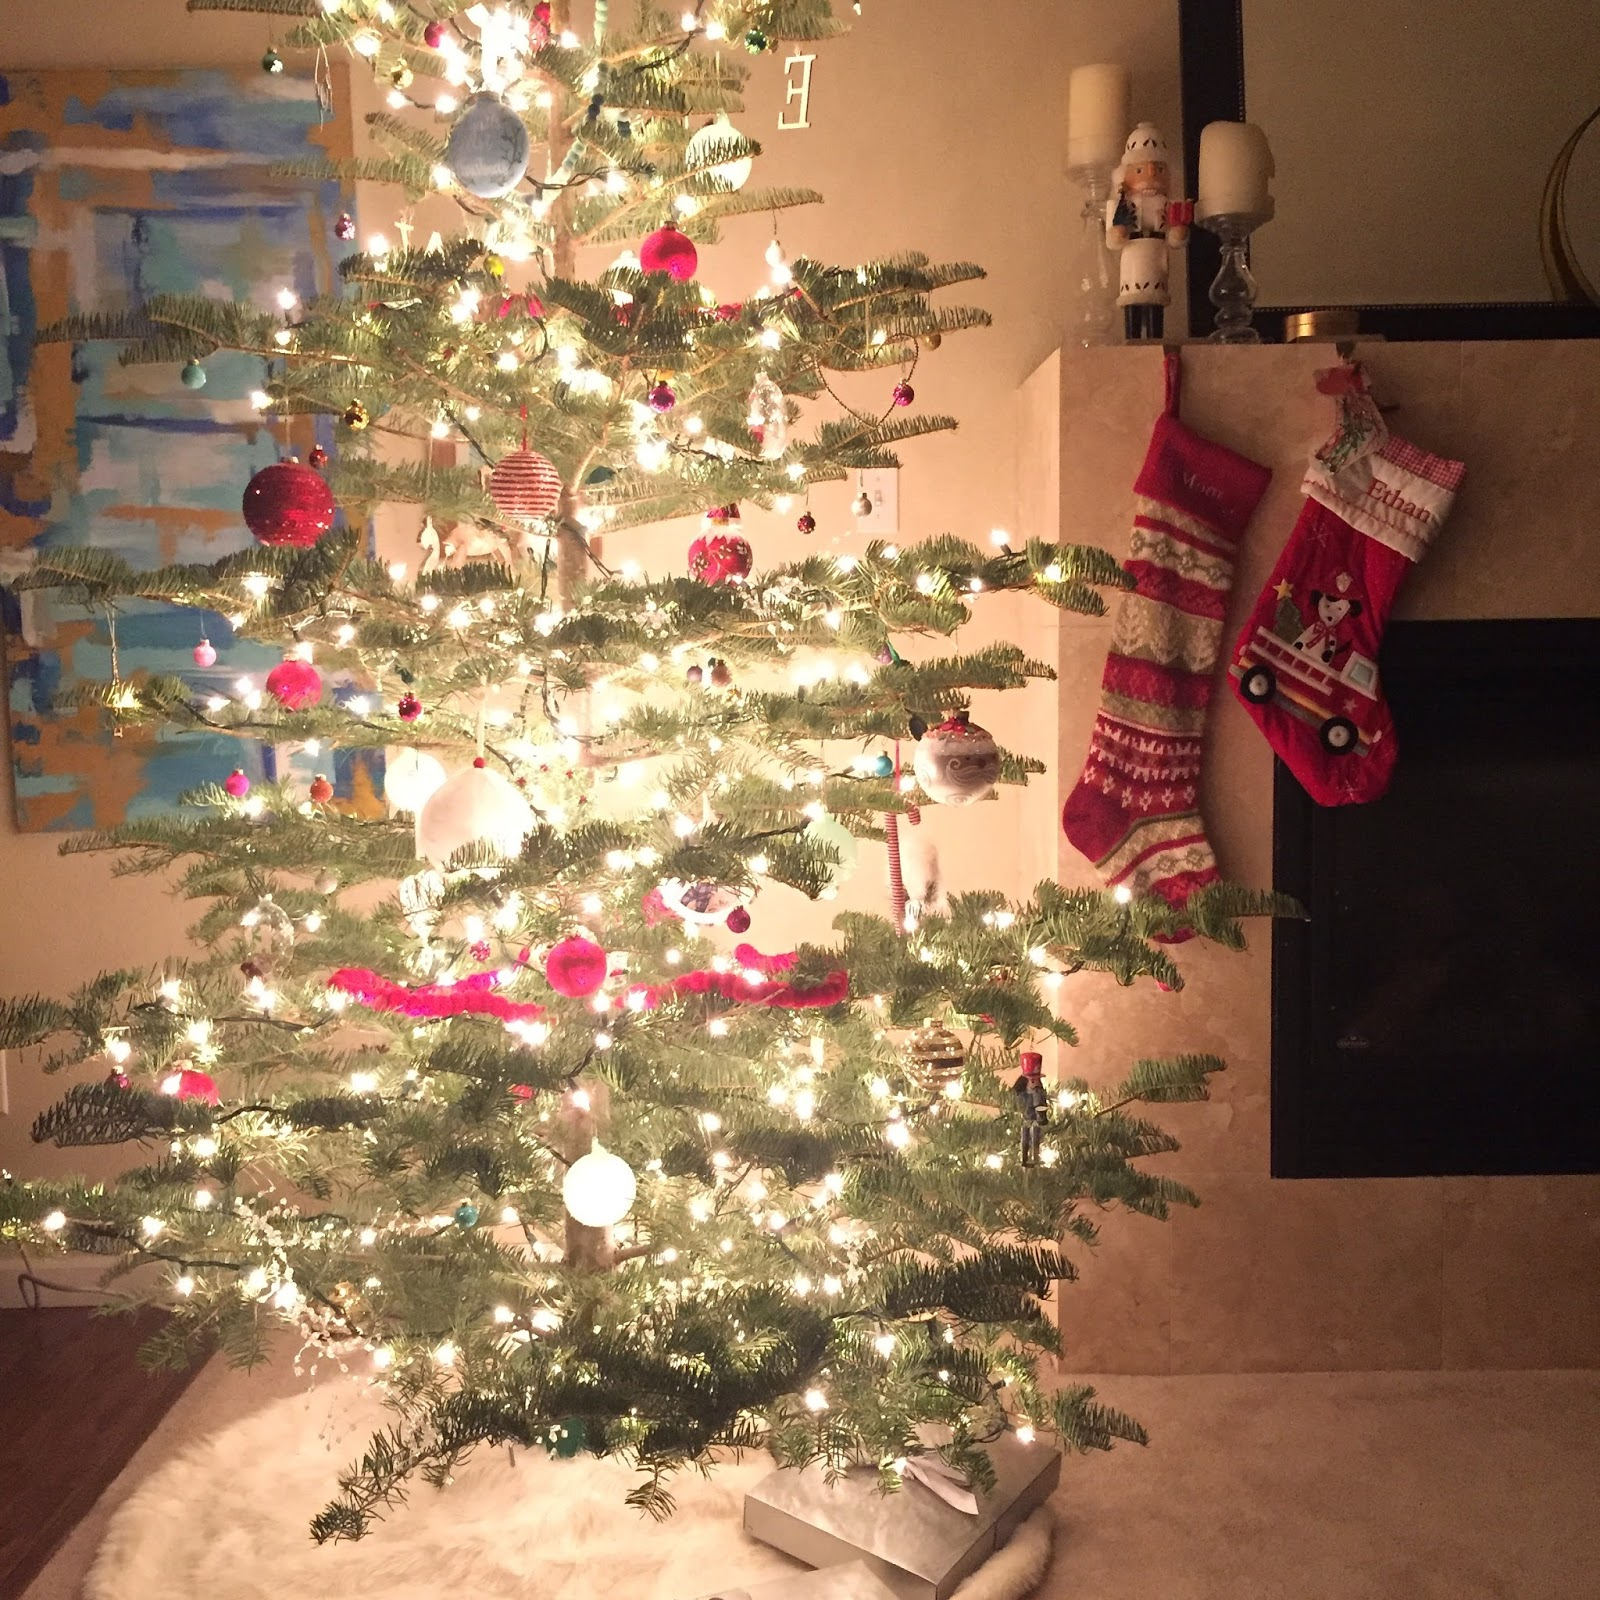 Pottery barn tree skirts - Great We Got The Tree Skirt From Target Stockings Are From Pottery Barn Kids With Pottery Barn Tree Skirt